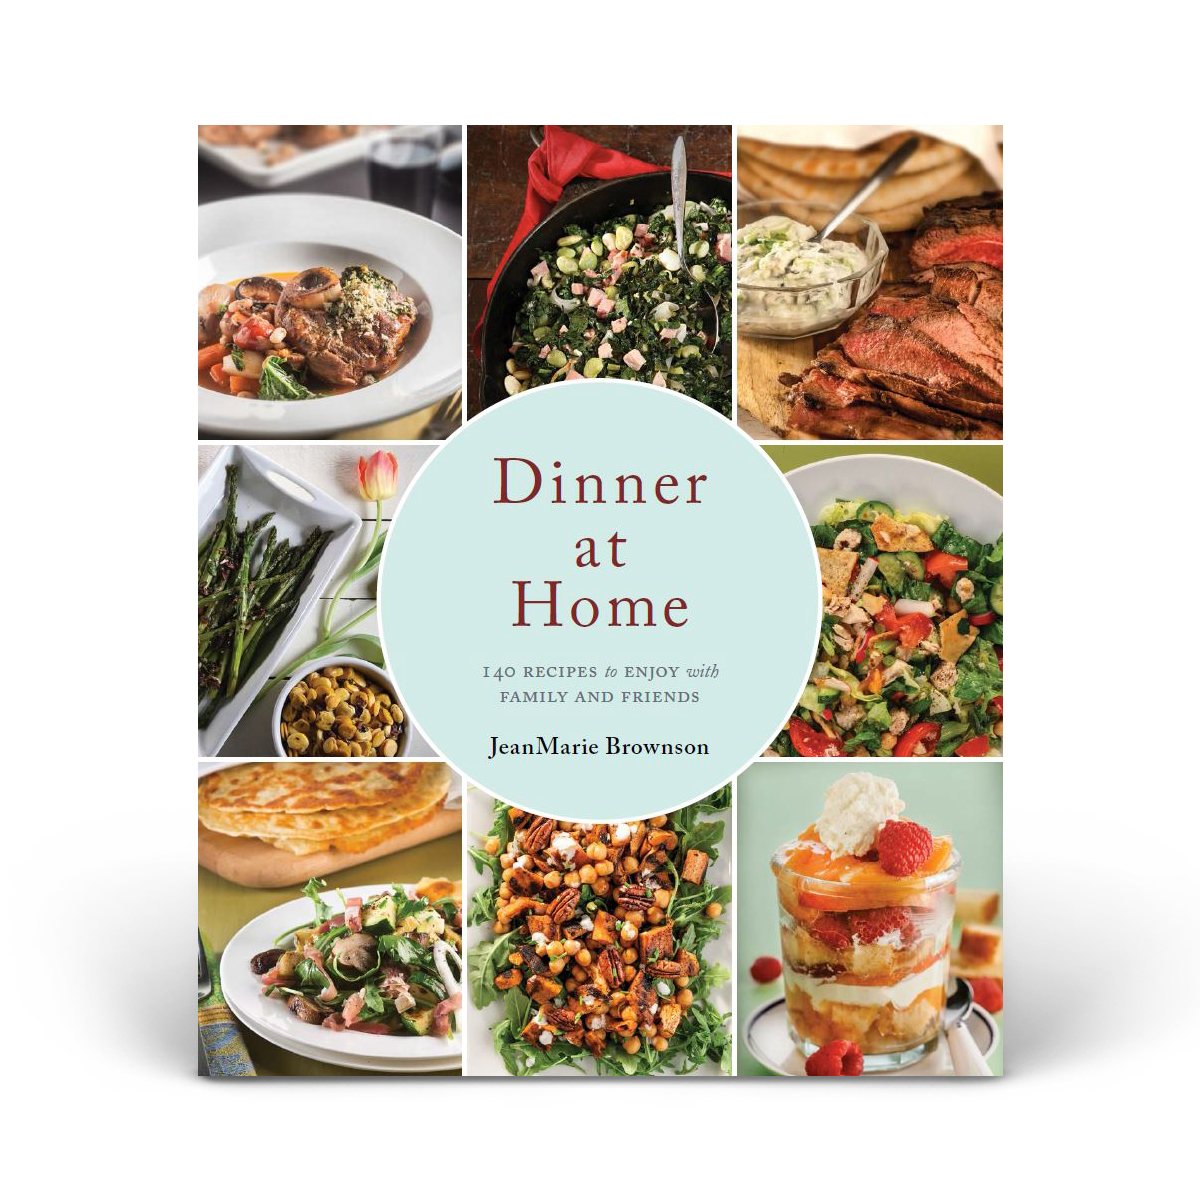 Dinner at Home: 140 Recipes to Enjoy with Family and Friends